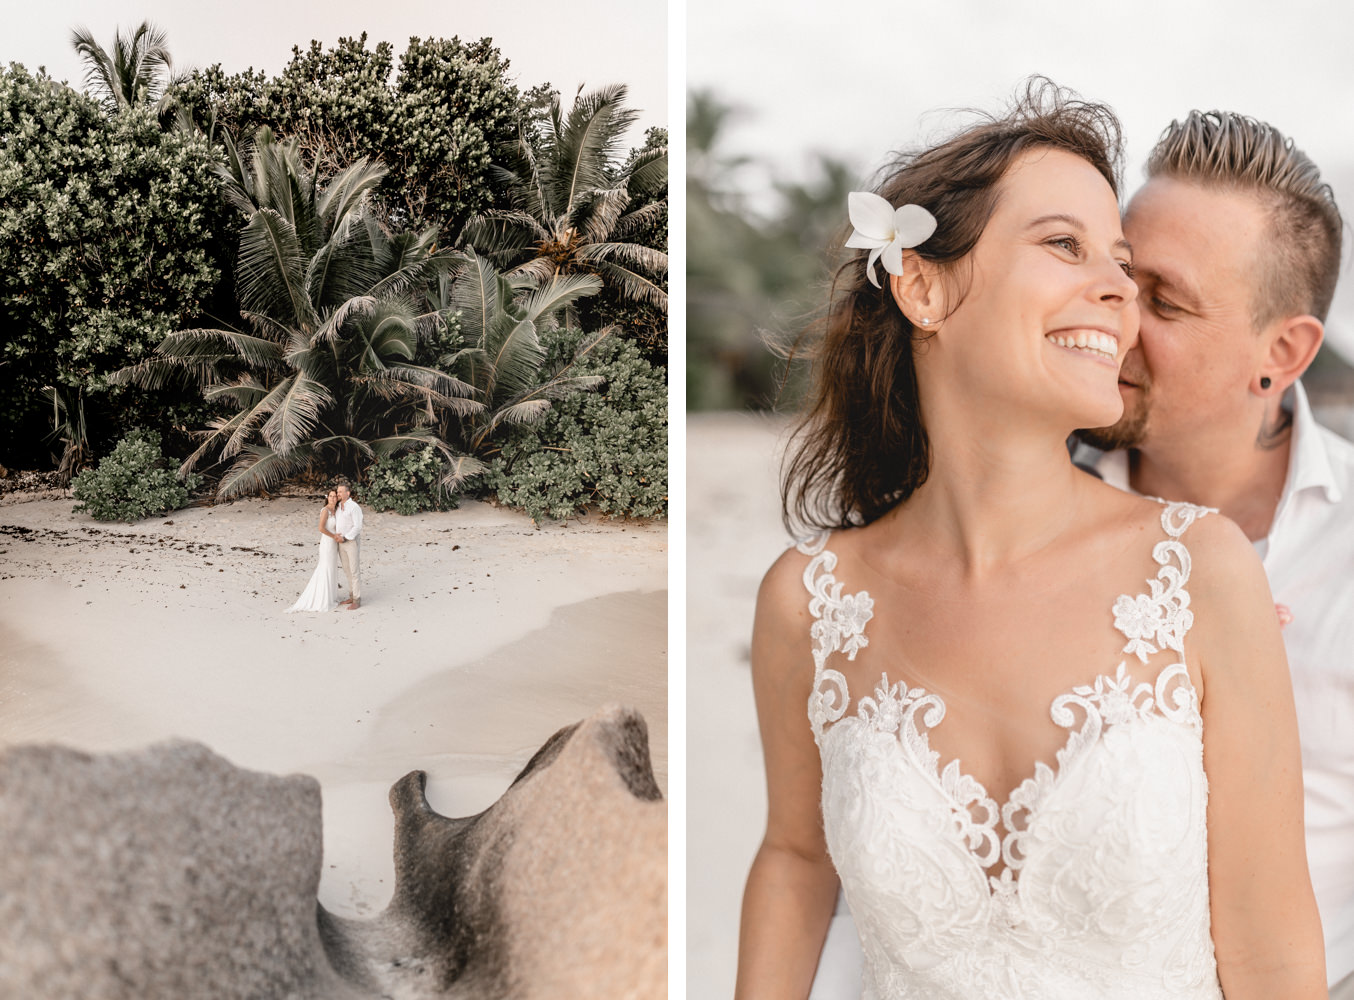 Weddingphotography at Domaine de l'Orangeraie with bridal couple at the beach of Seychelles